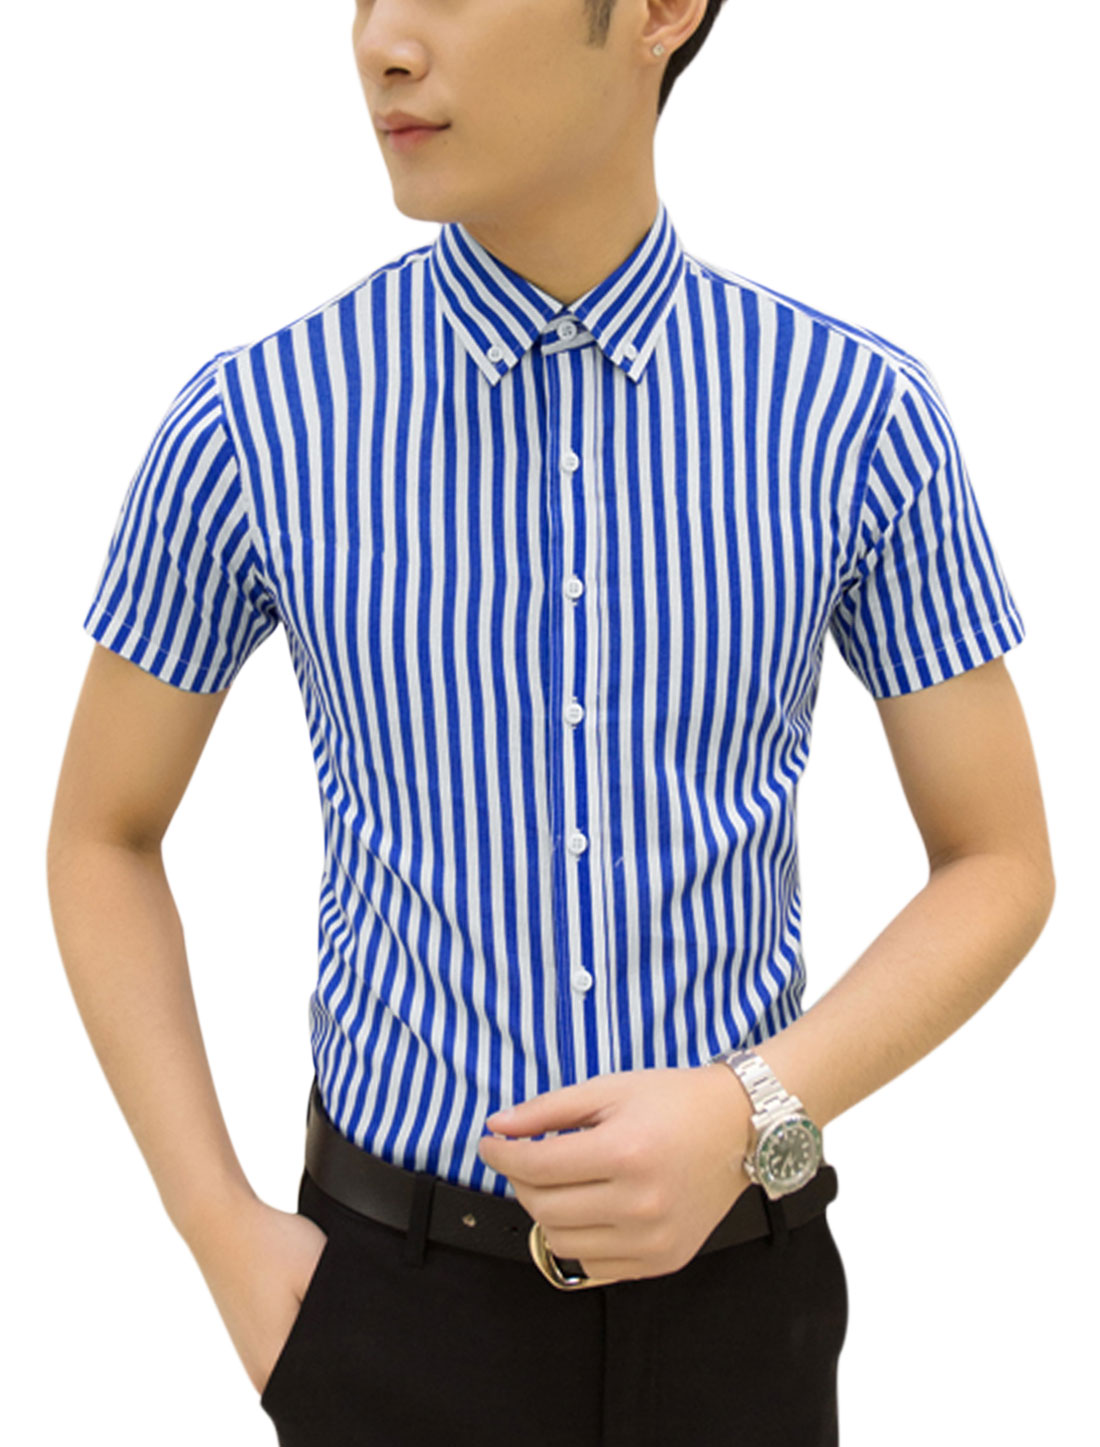 Men Short Sleeves Button Closed Striped Casual Shirts Blue White M